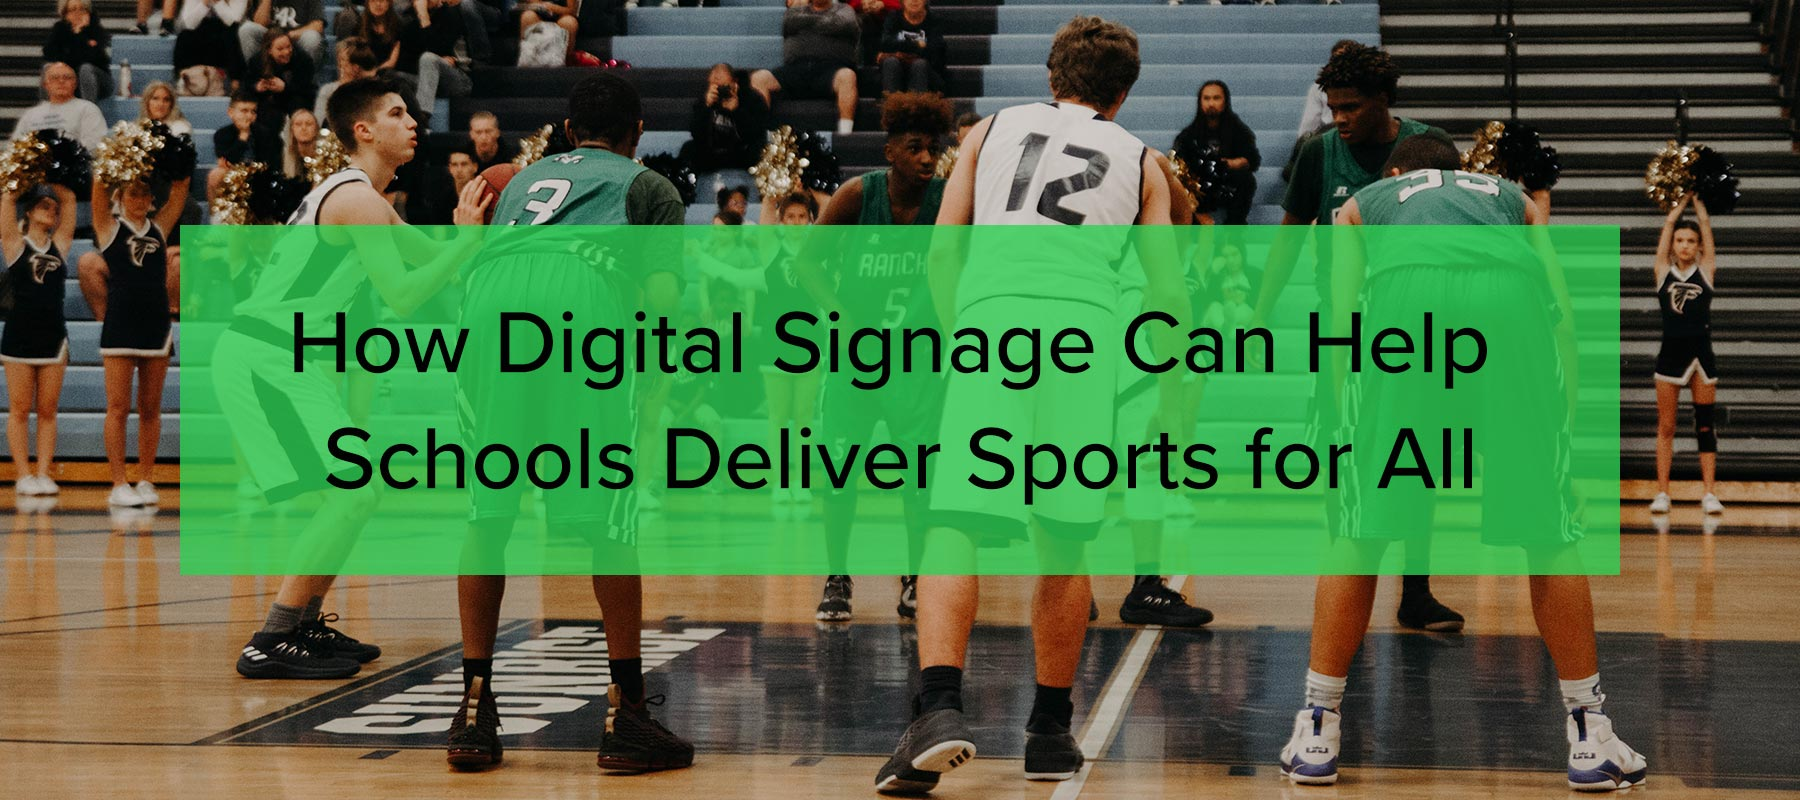 How Digital Signage Can Help Schools Deliver Sports for All